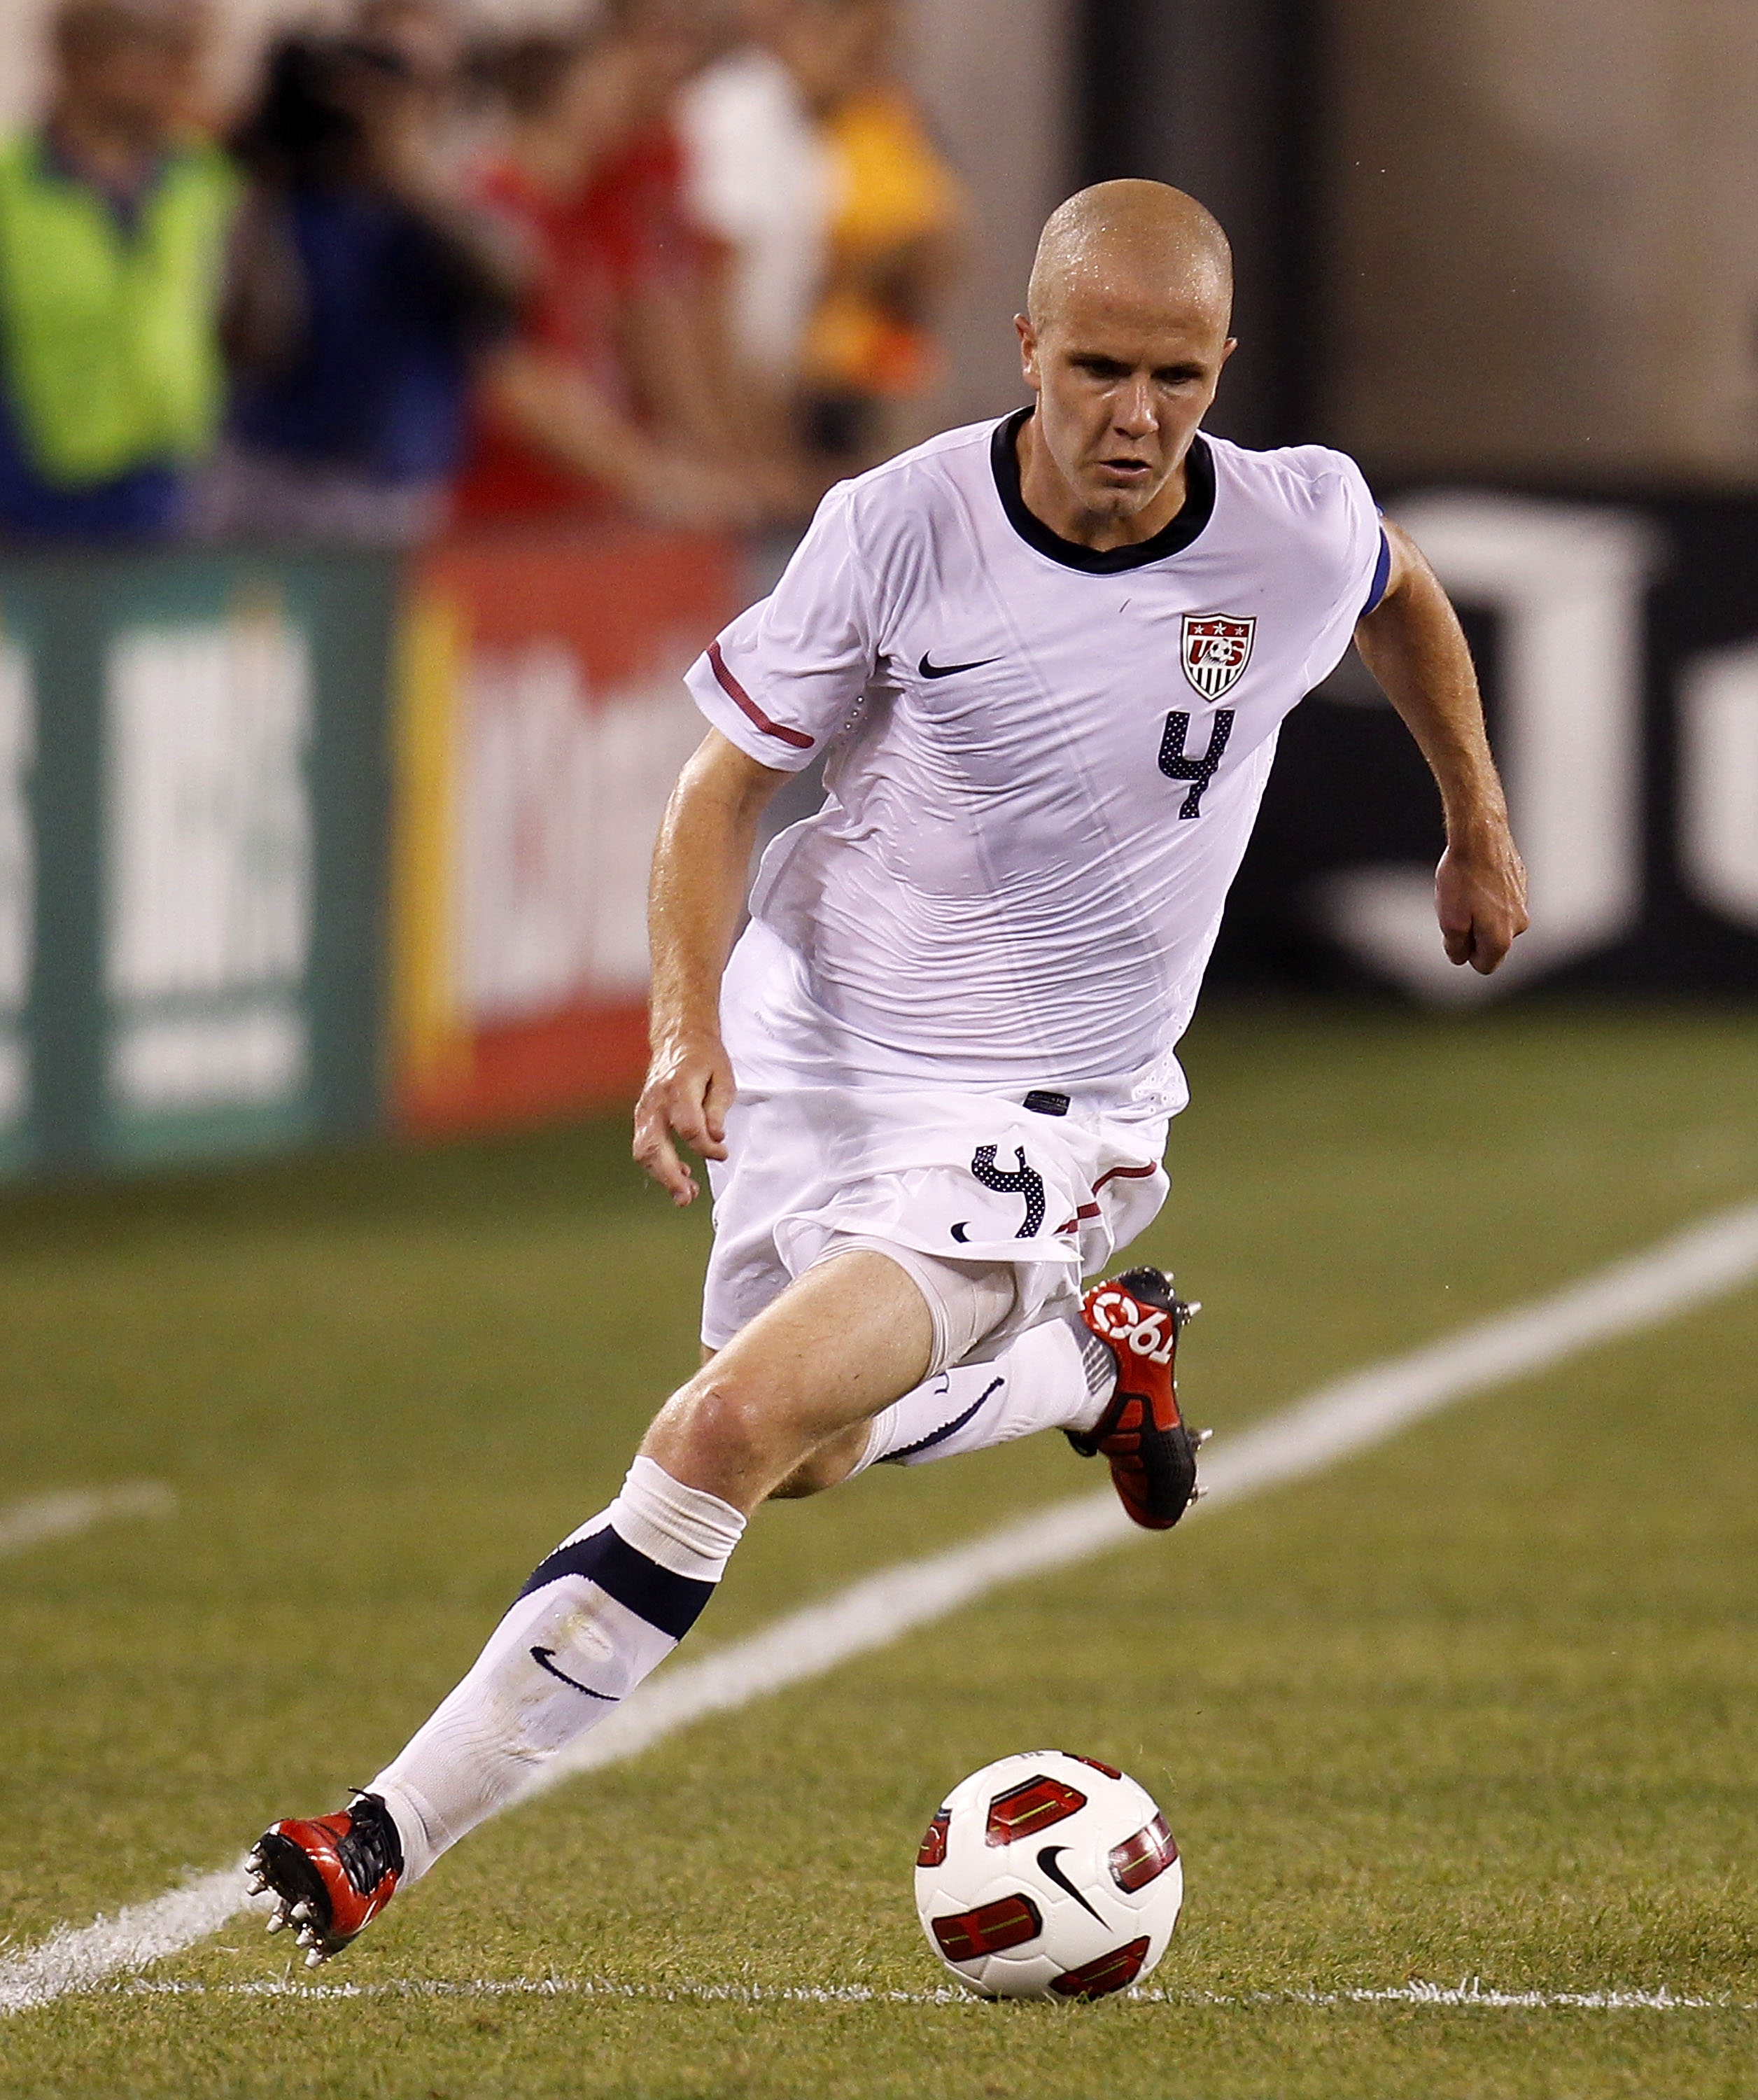 EAST RUTHERFORD, NJ - AUGUST 10: Michael Bradley #4 of the U.S. faces Brazil in the second half of a friendly match at the New Meadowlands on August 10, 2010 in East Rutherford, New Jersey. (Photo by Jeff Zelevansky/Getty Images)